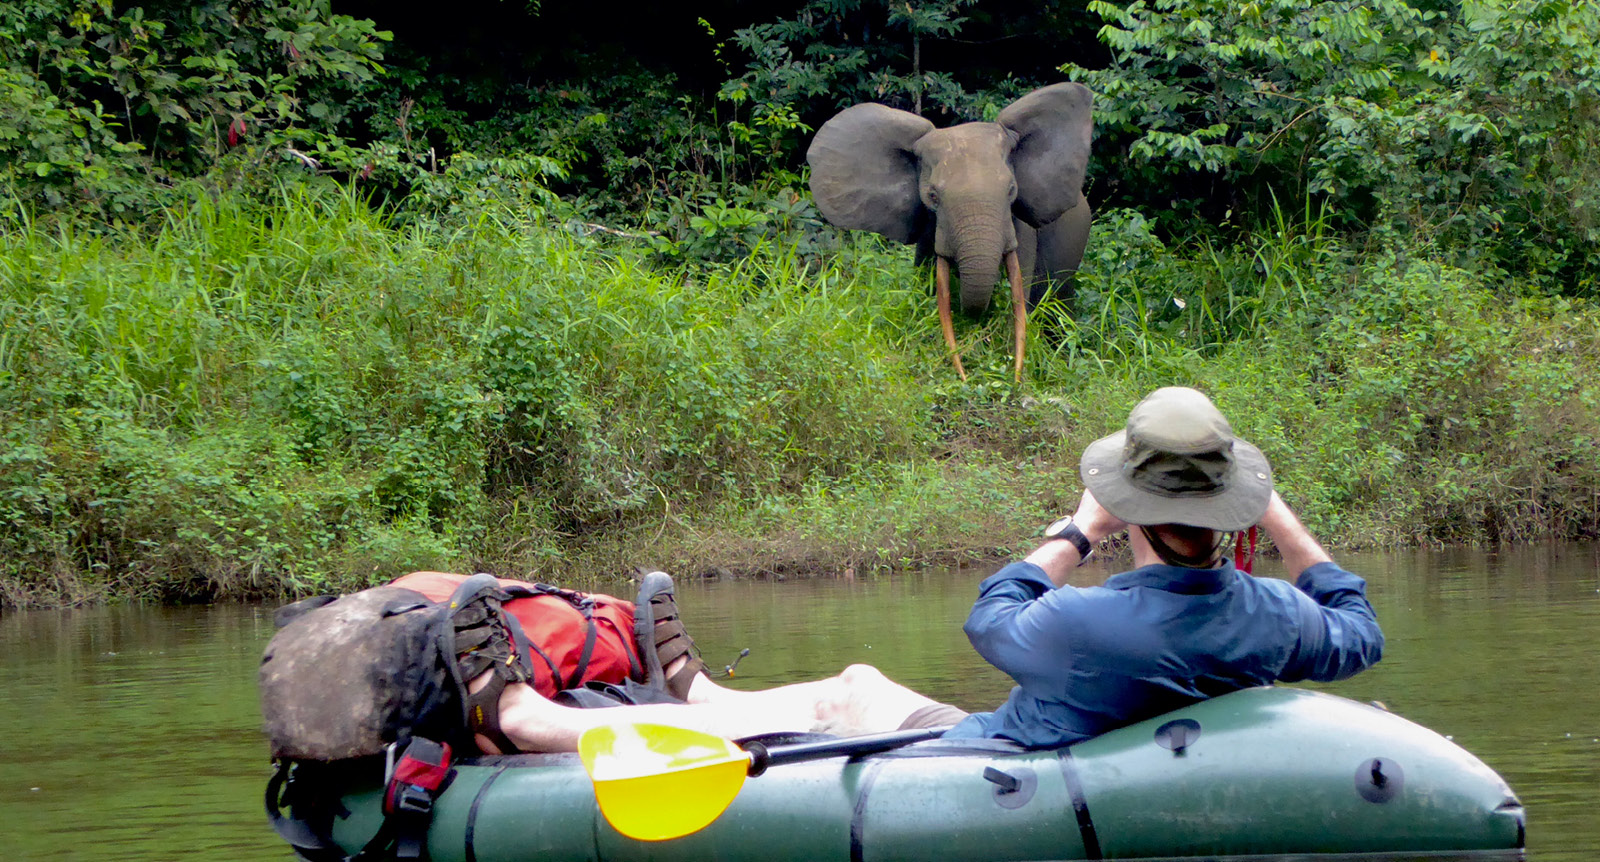 Packrafting metres away from a wild African jungle elephant on the river bank of the Kongou river, Gabon